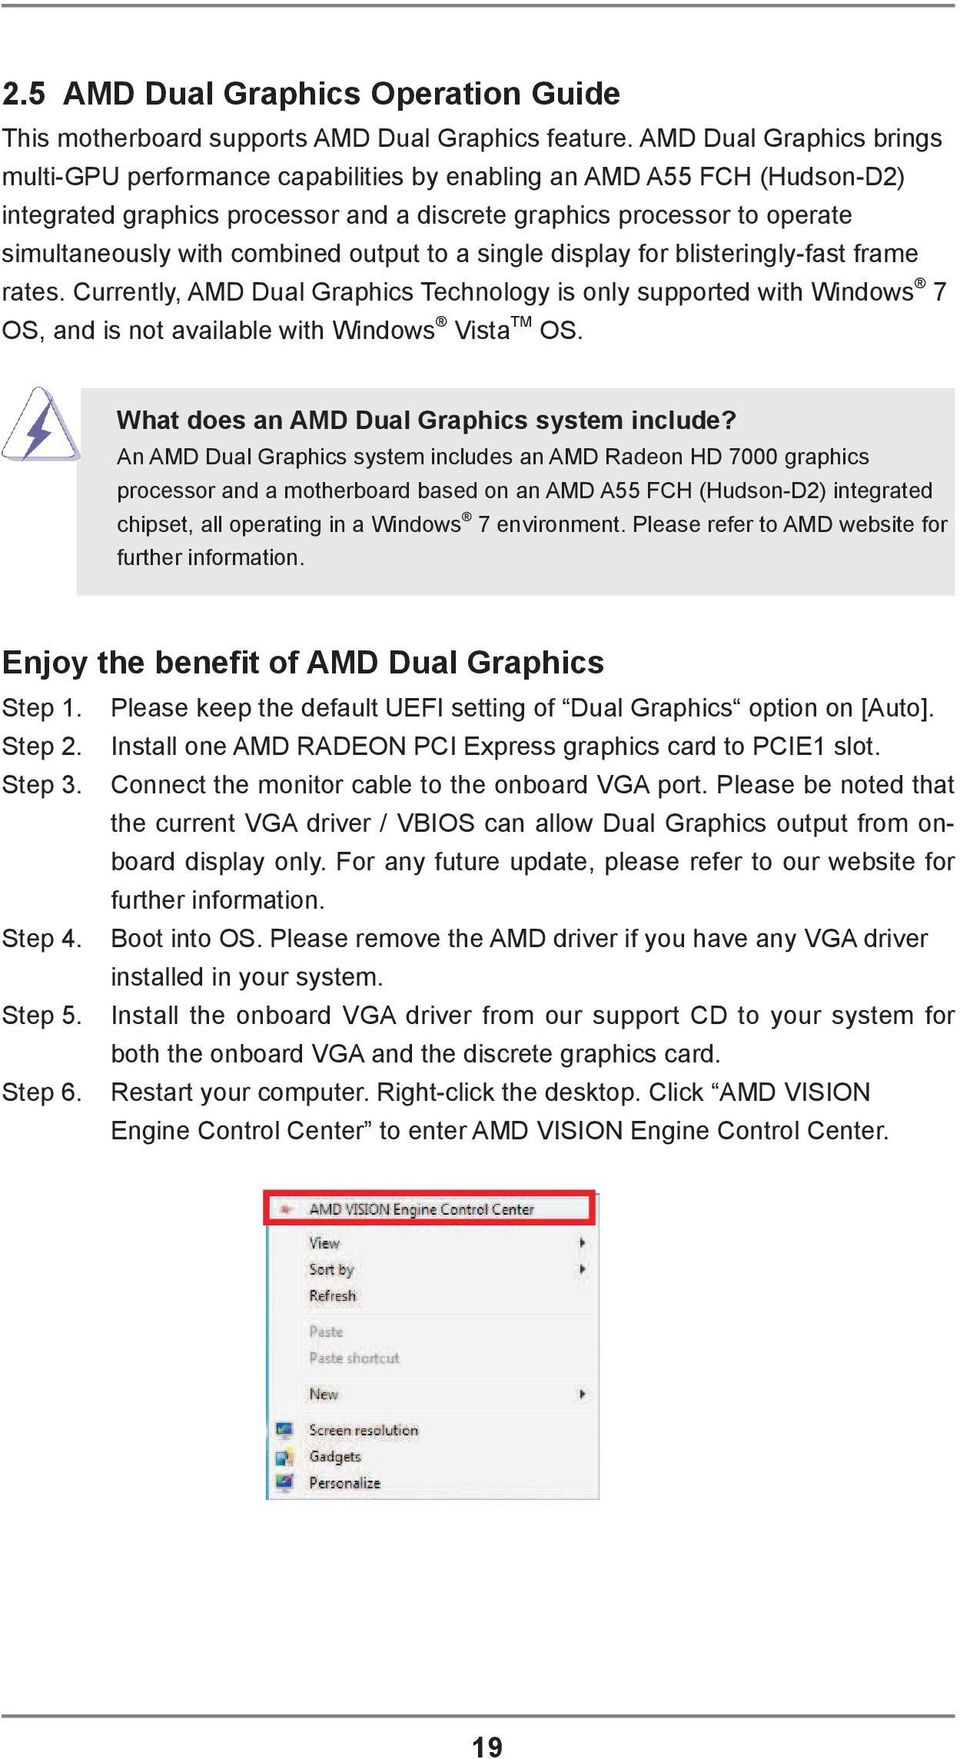 combined output to a single display for blisteringly-fast frame rates. Currently, AMD Dual Graphics Technology is only supported with Windows 7 OS, and is not available with Windows Vista TM OS.